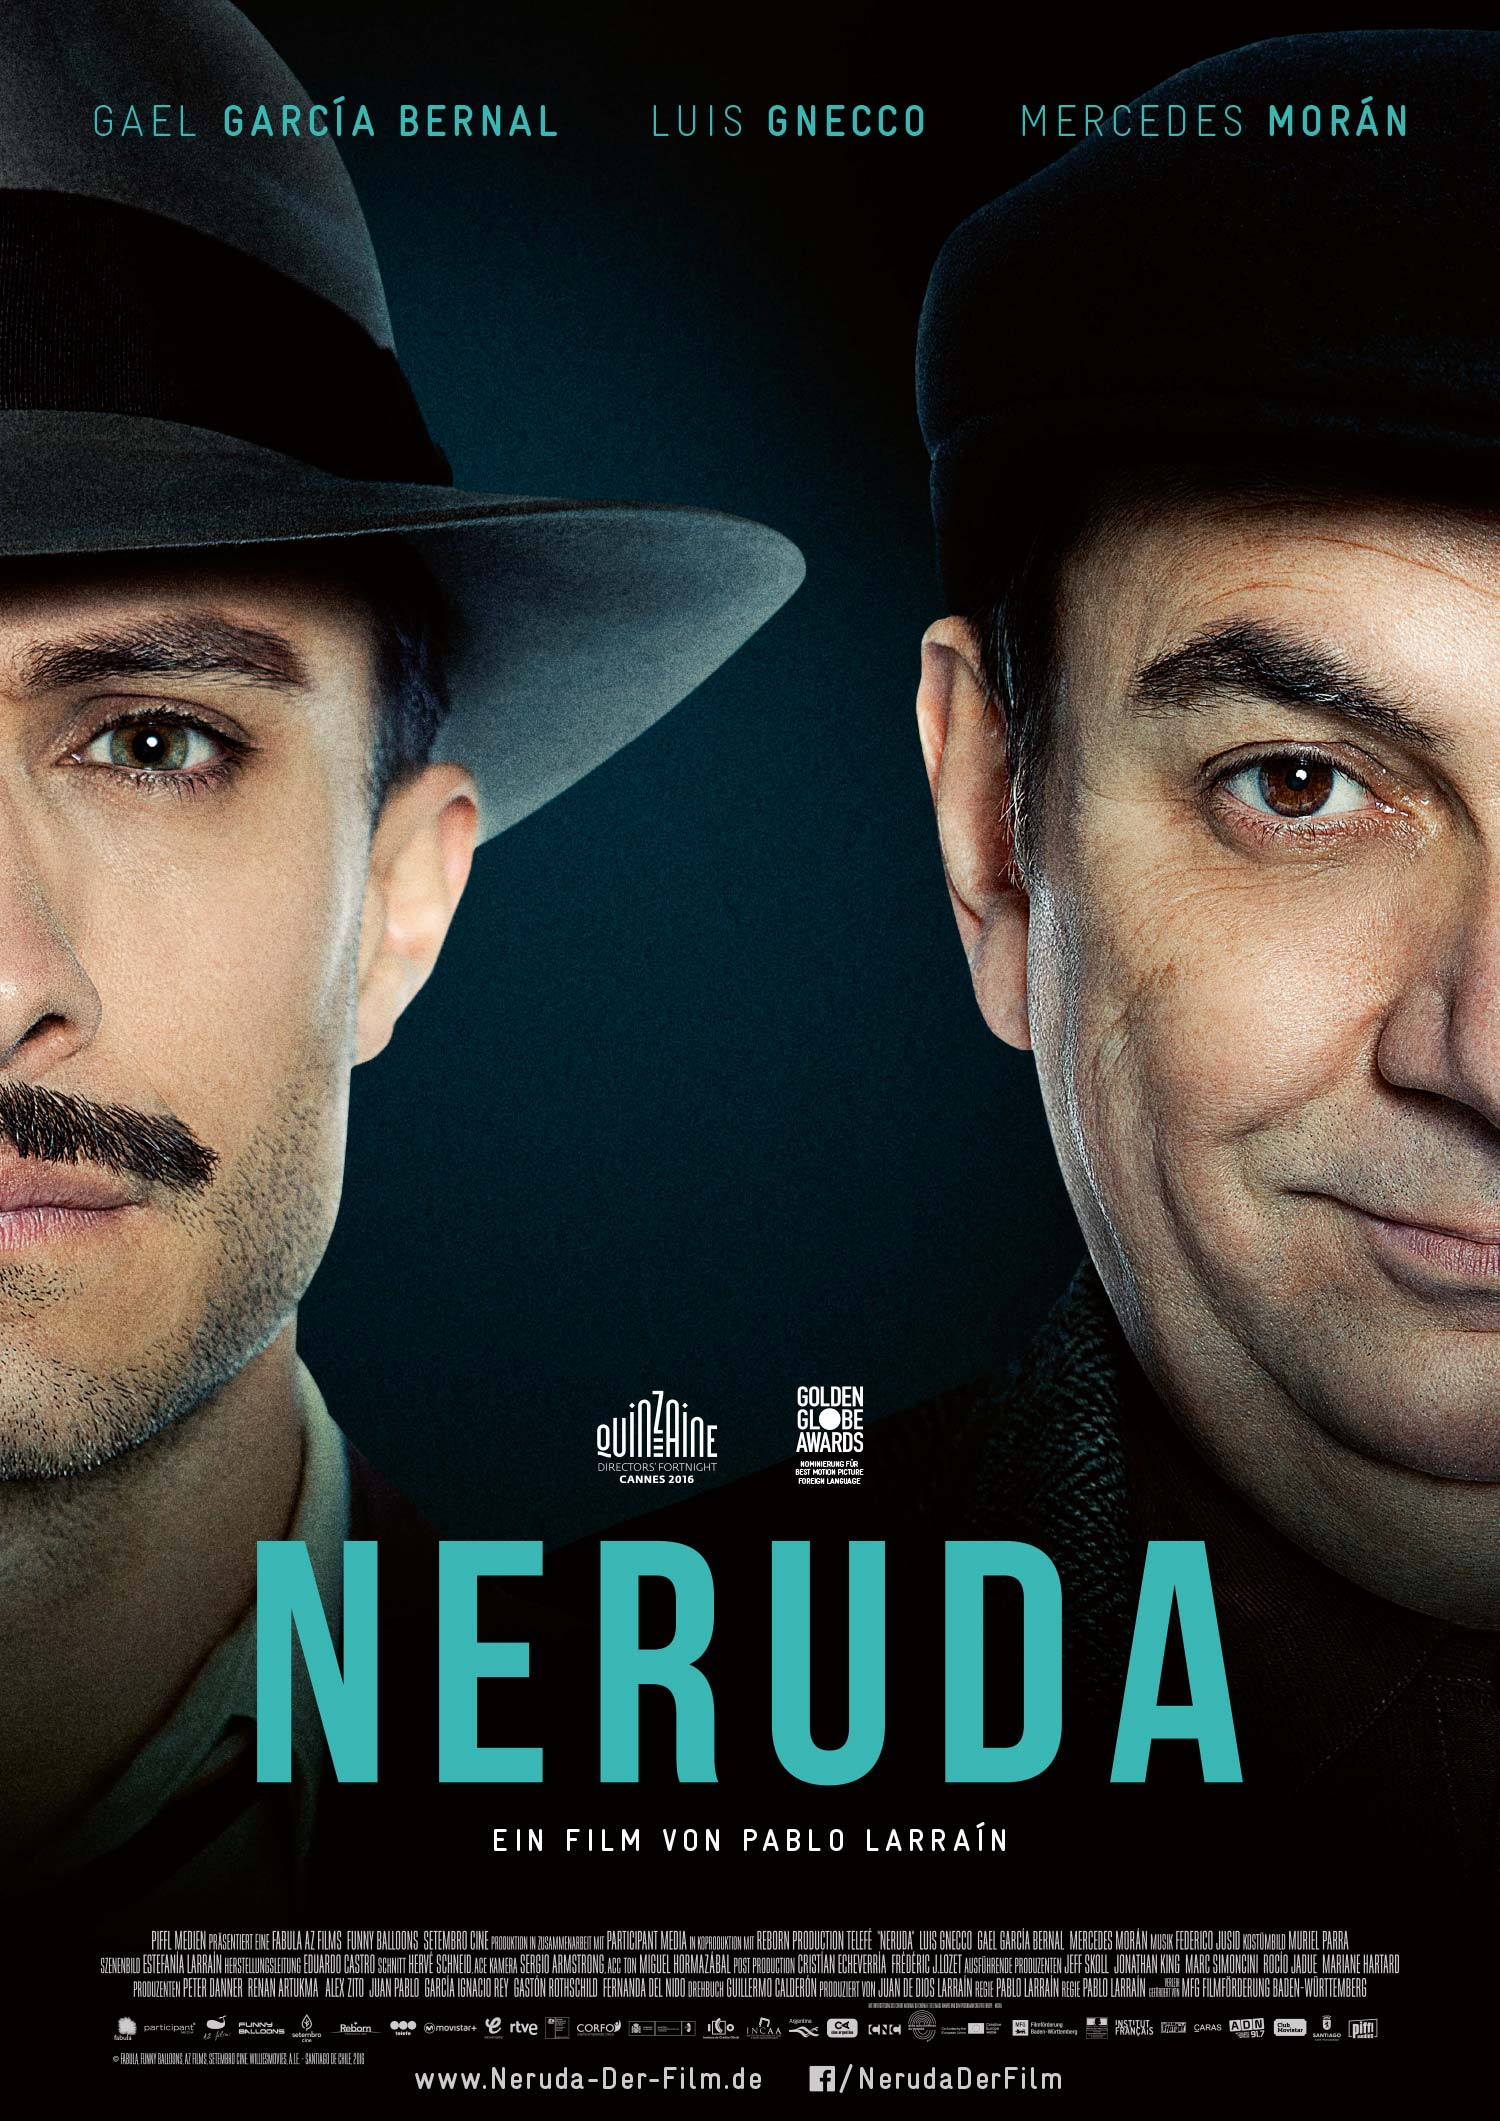 "Piffl Medien<a href=""/neruda"">→</a><strong>Adaption</strong>"